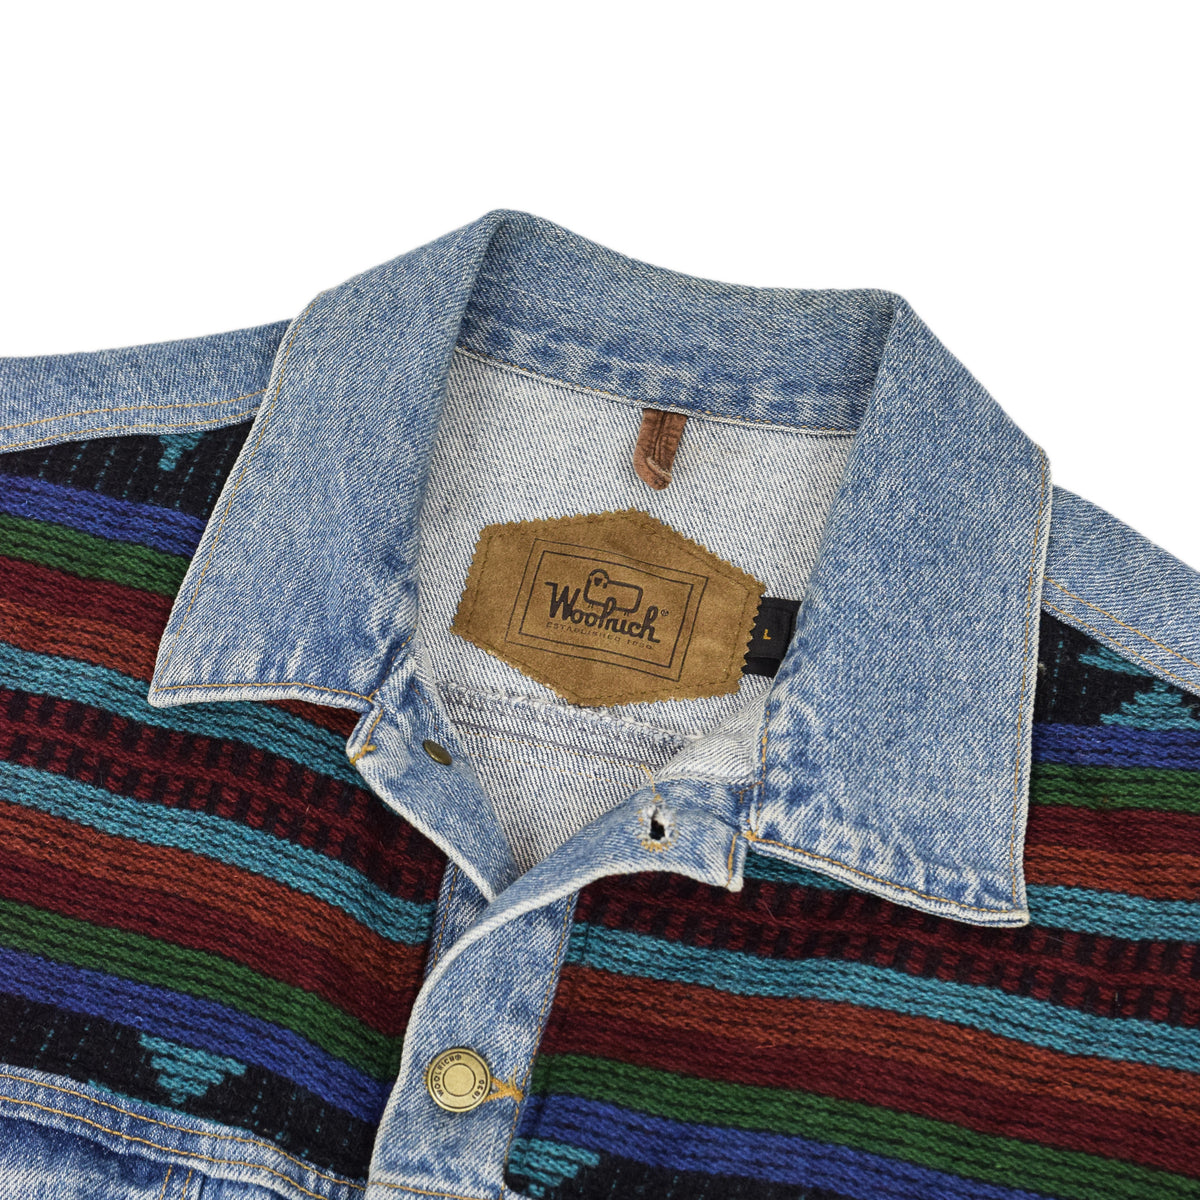 Vintage 80s Woolrich Denim Trucker Jacket Navajo Panels Made in USA L / XL collar detail